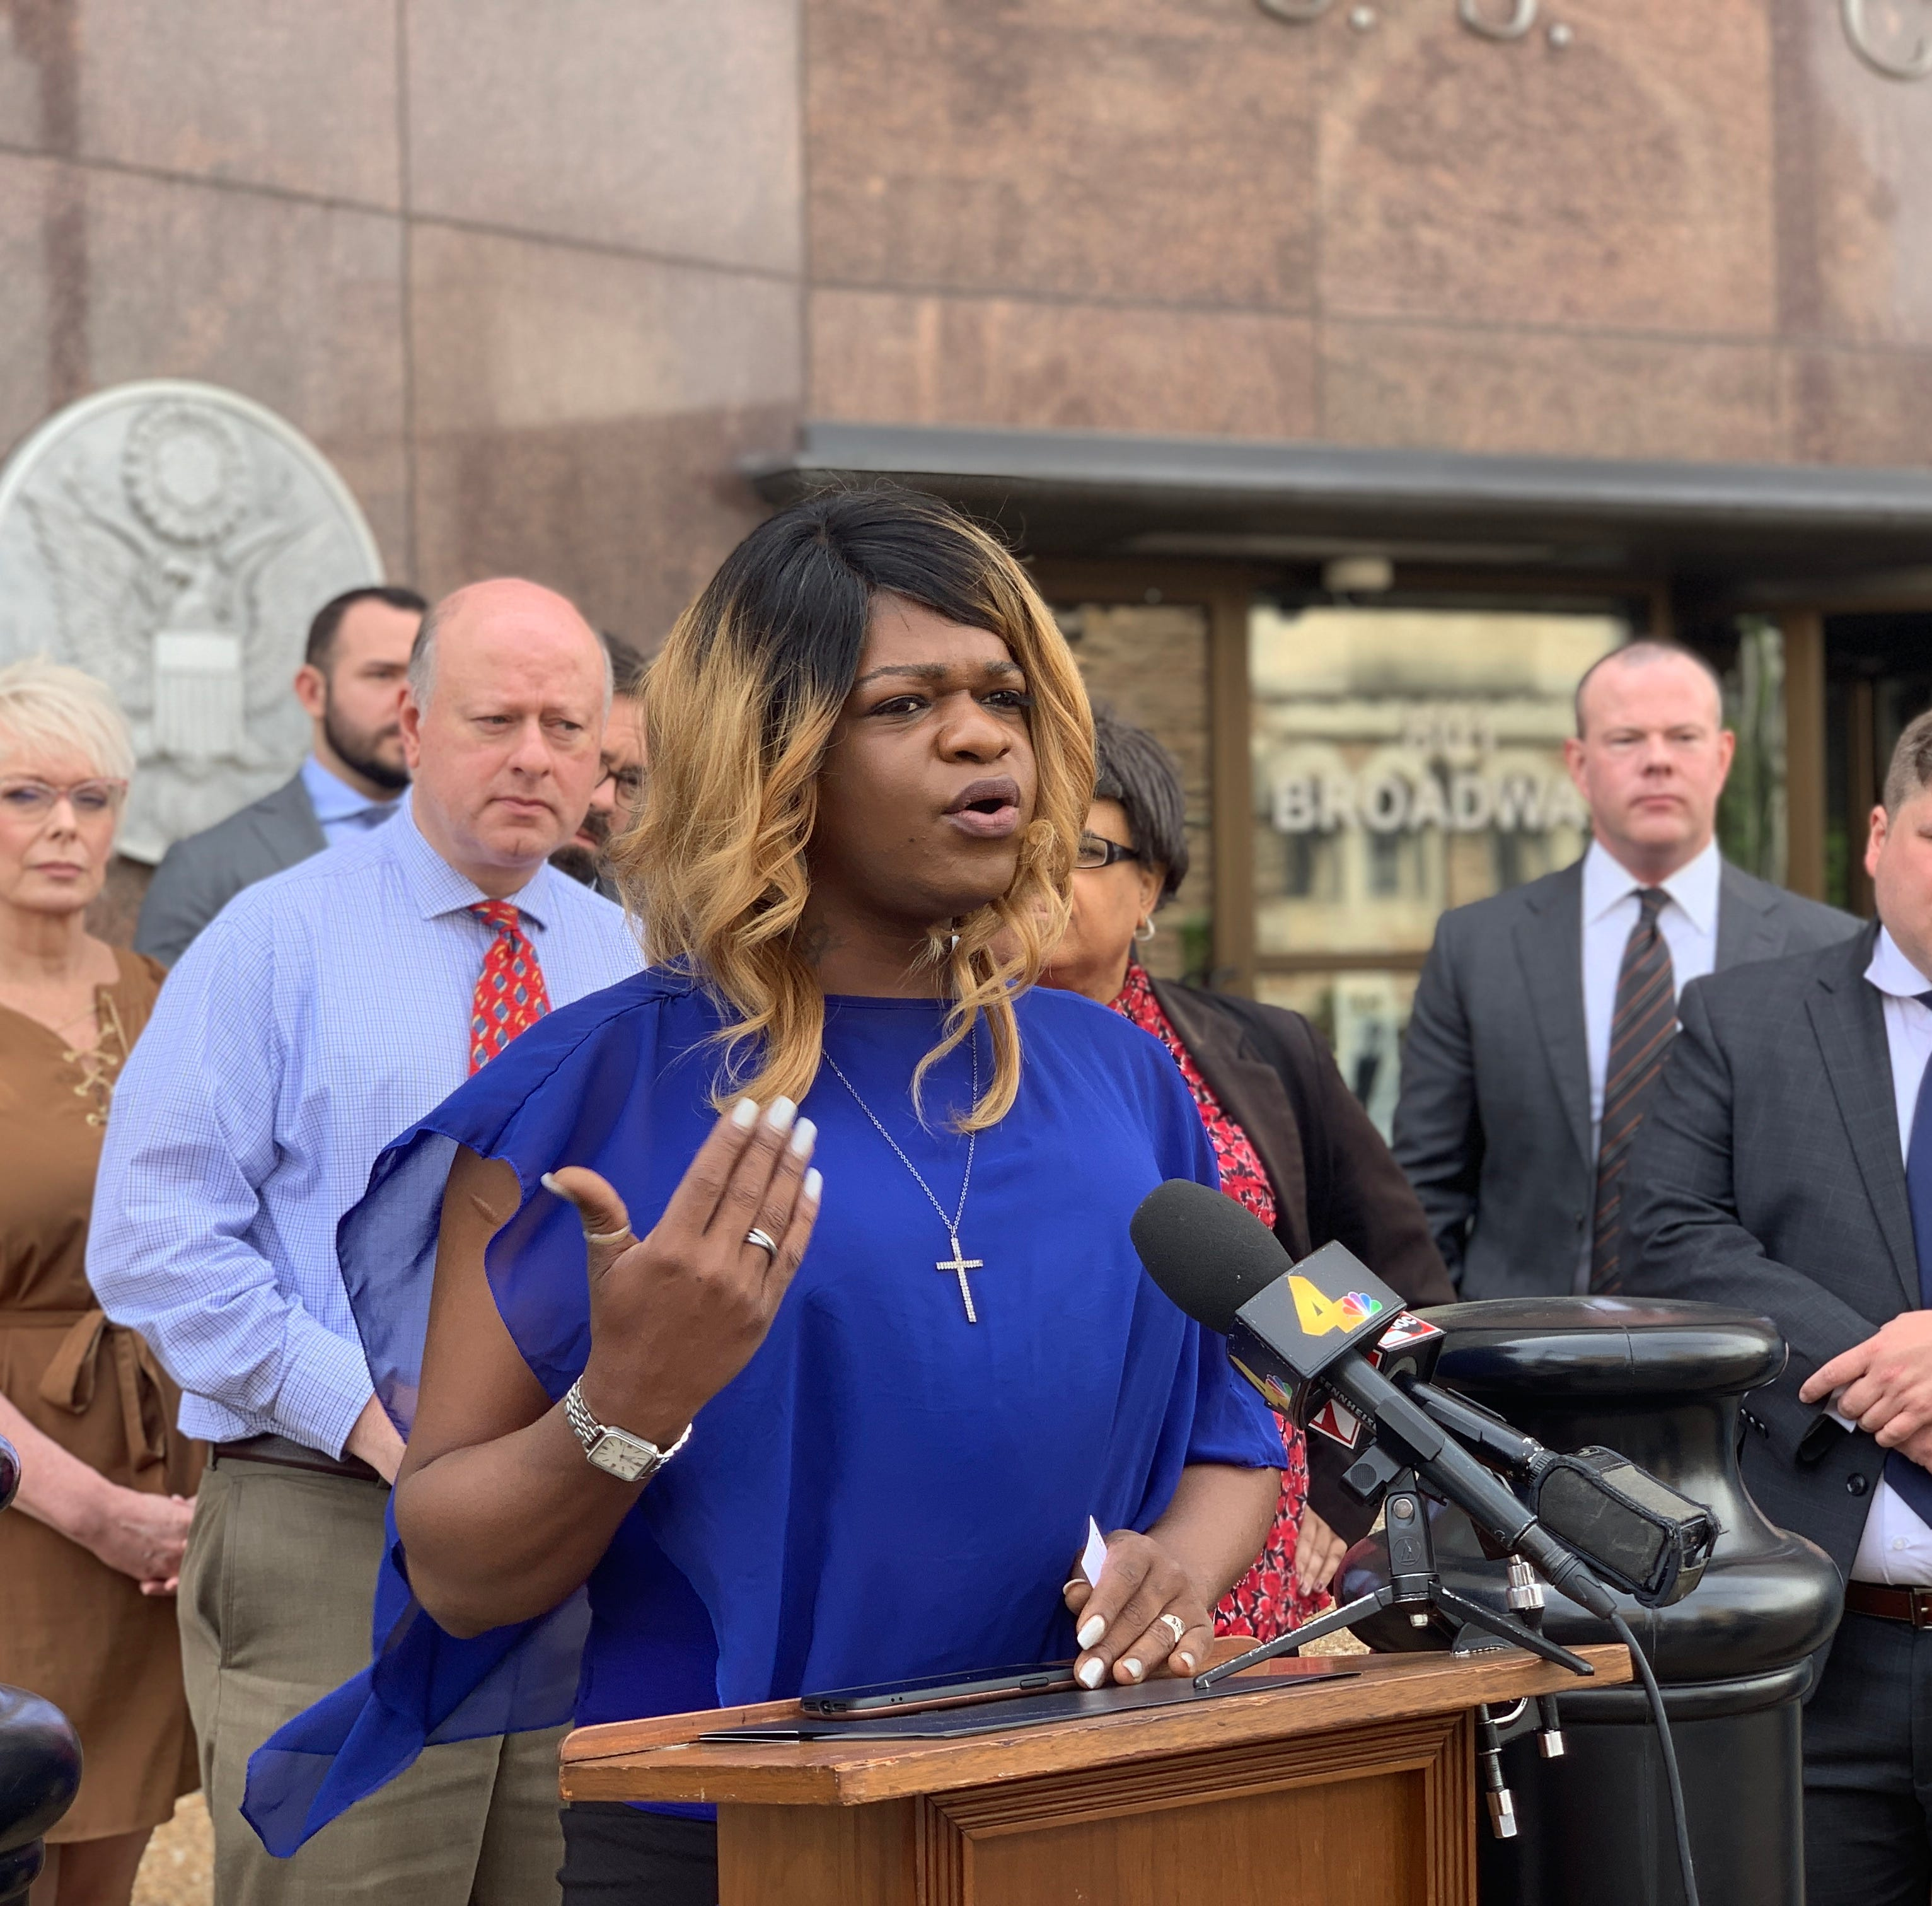 Transgender individuals file lawsuit regarding birth certificate policy